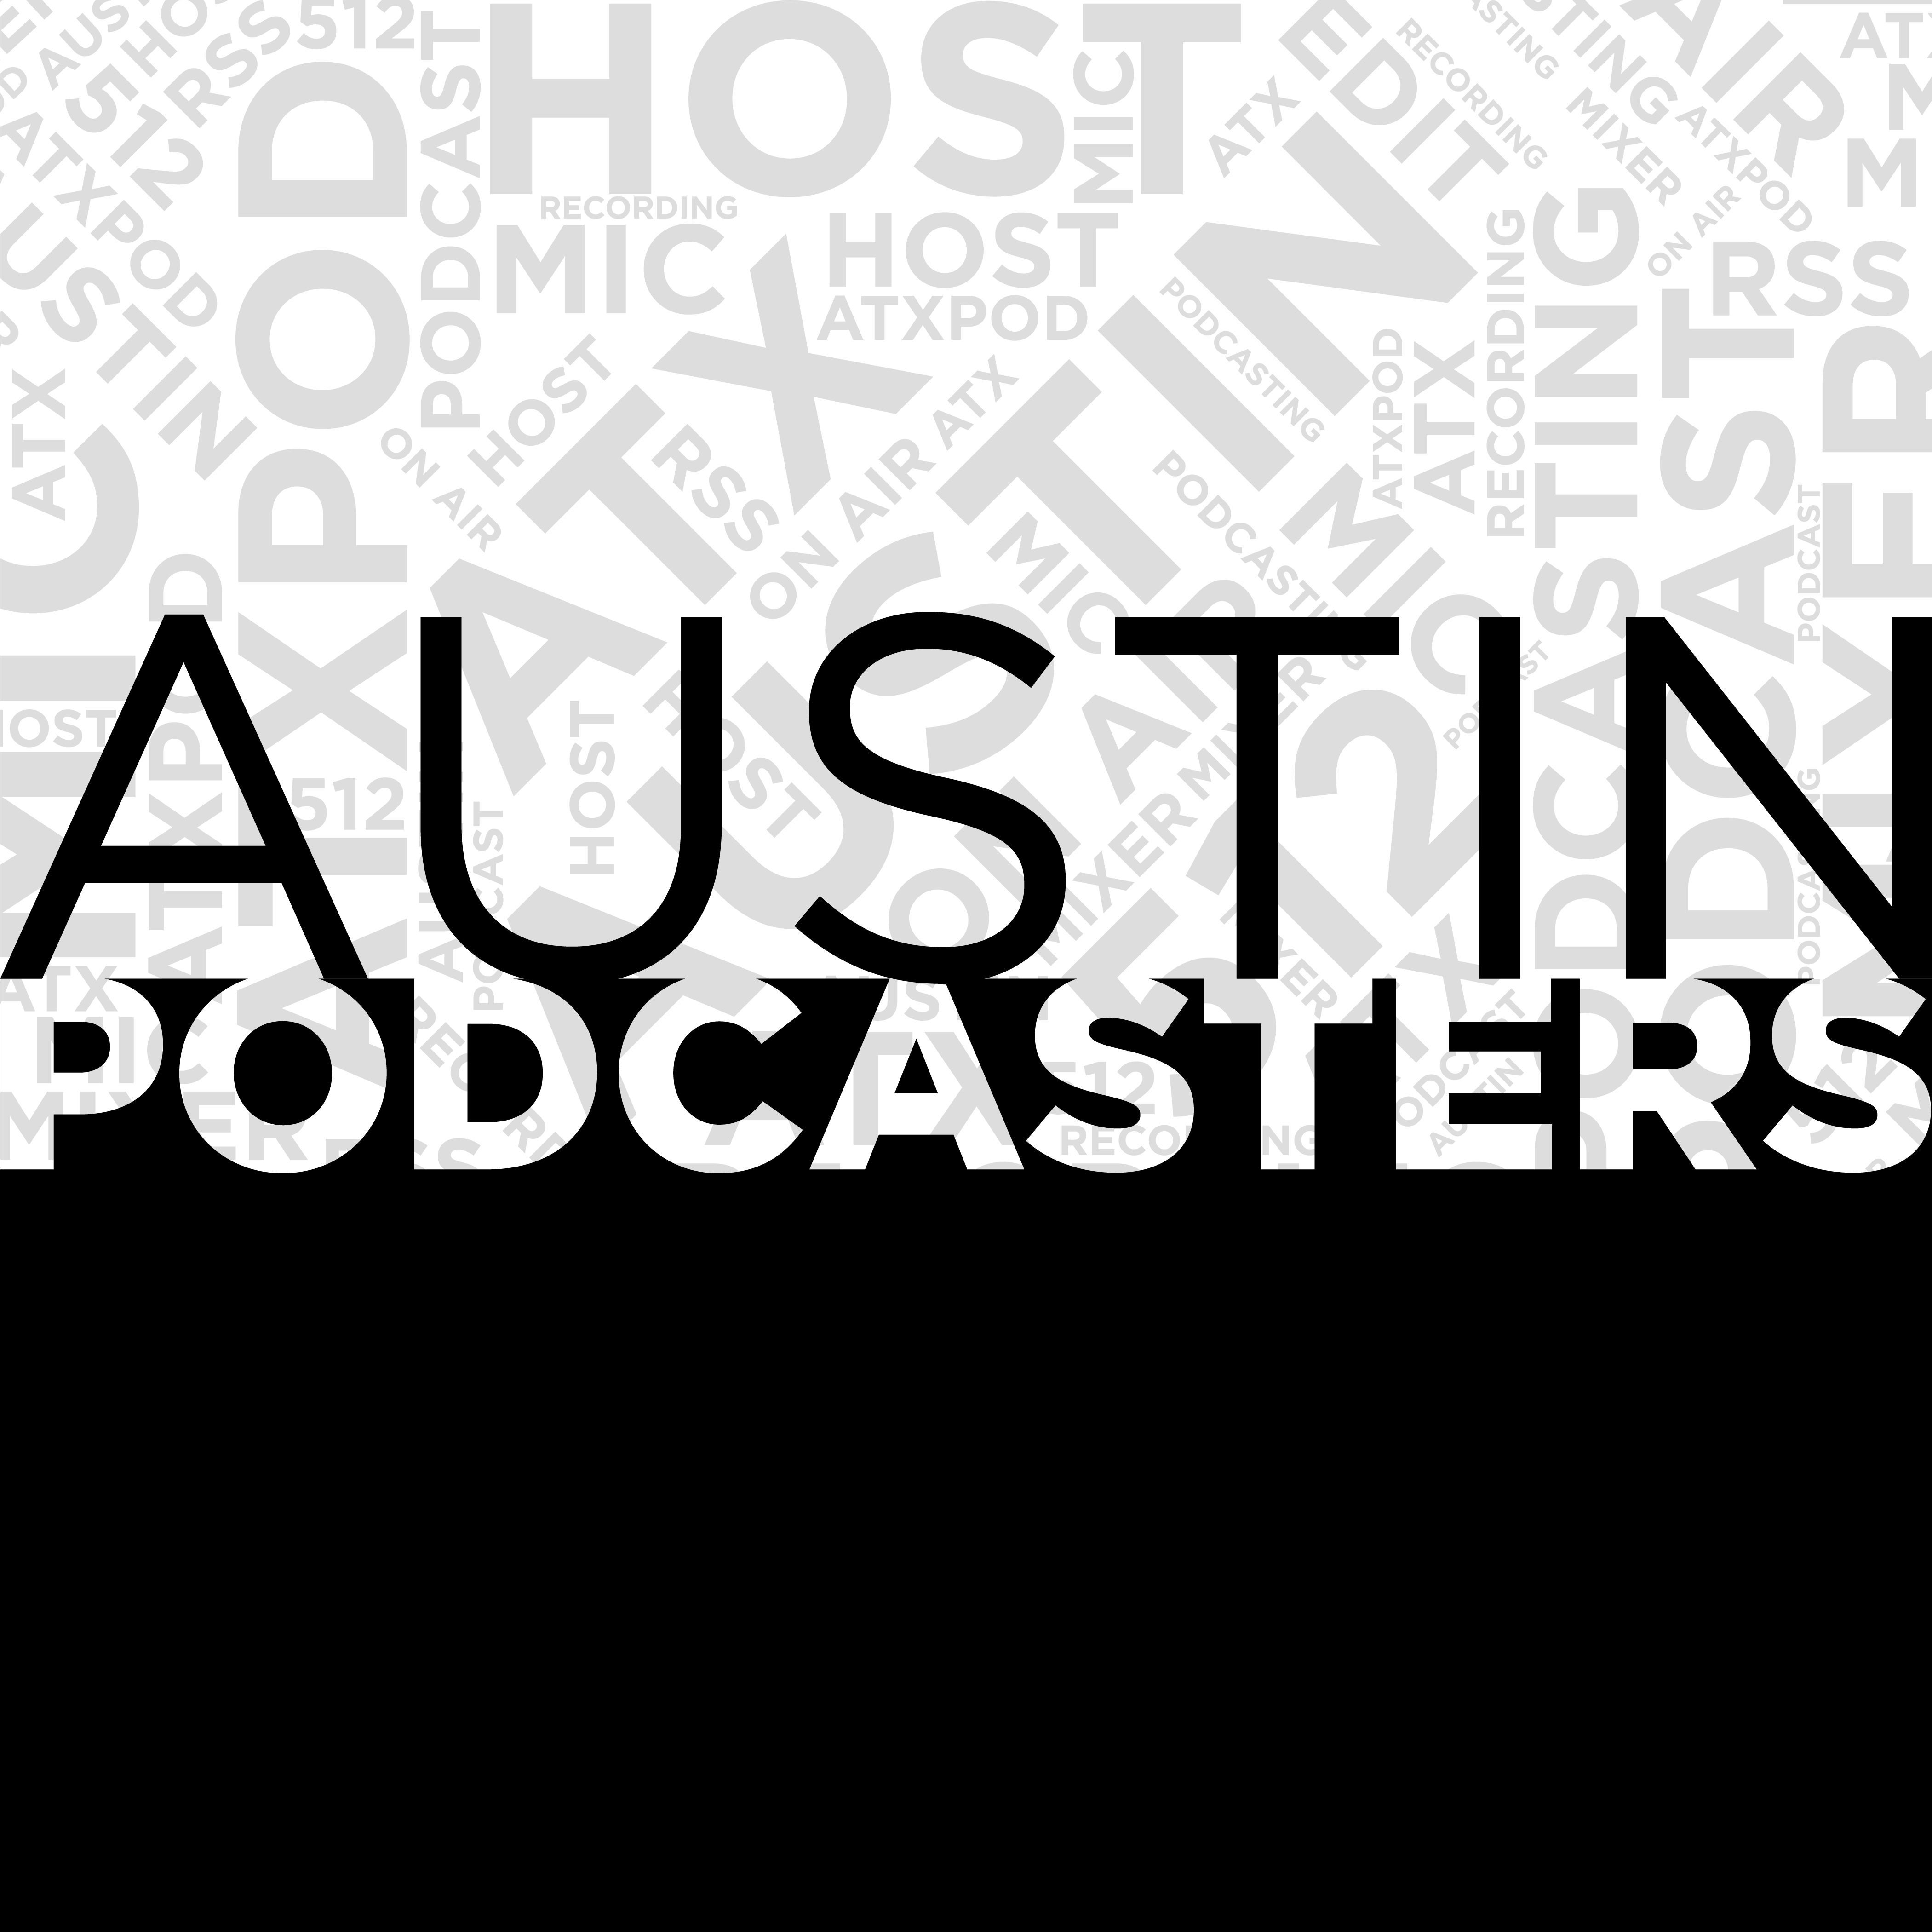 Austin Podcasters Meetup